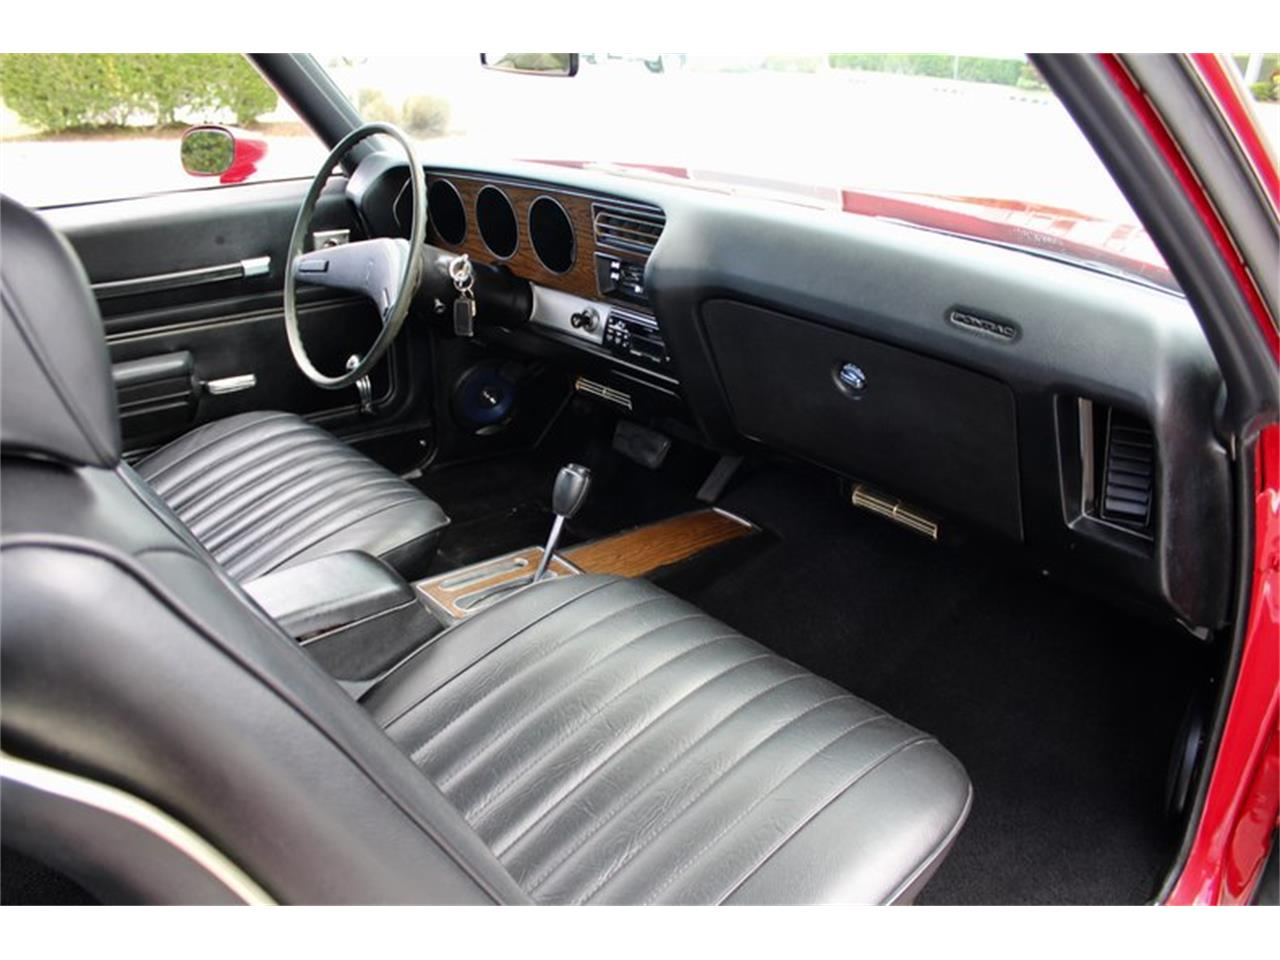 Large Picture of Classic '72 LeMans - $19,500.00 Offered by Classic Cars of Sarasota - PUAK